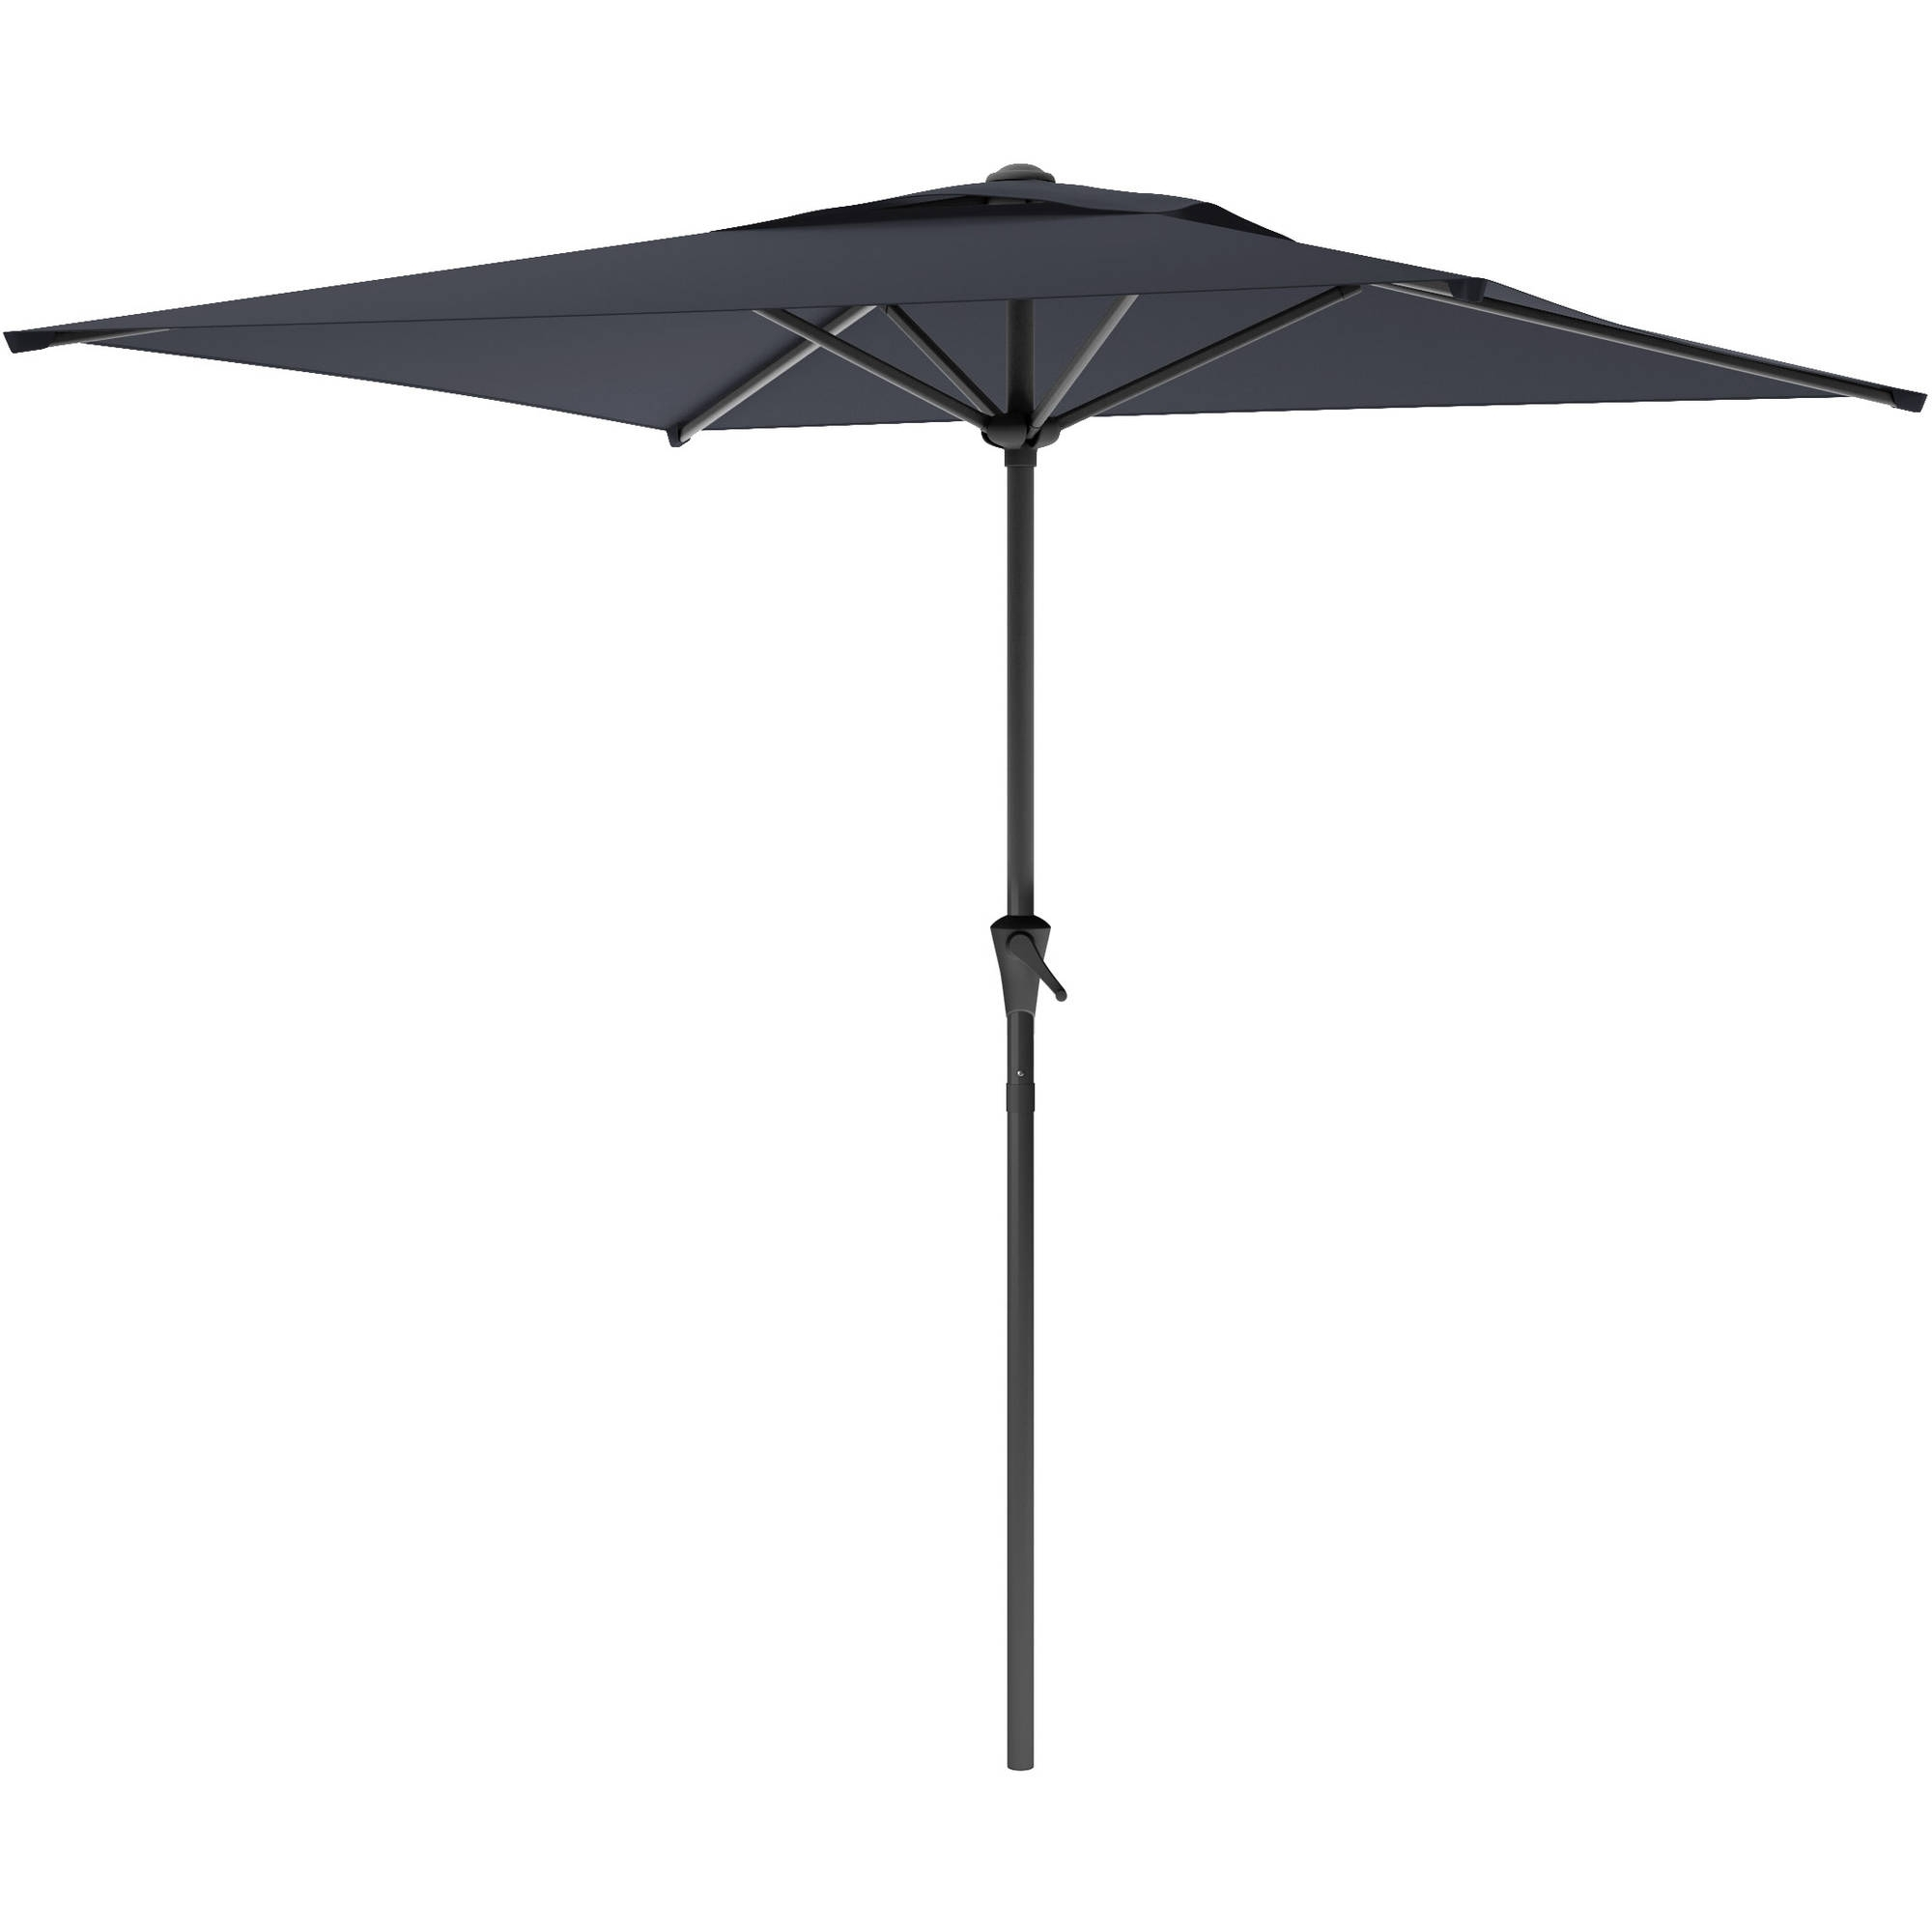 Black Patio Umbrellas Intended For Most Popular Sonax Corliving Square Patio Umbrella Metal Umbrellas In Black (View 4 of 20)